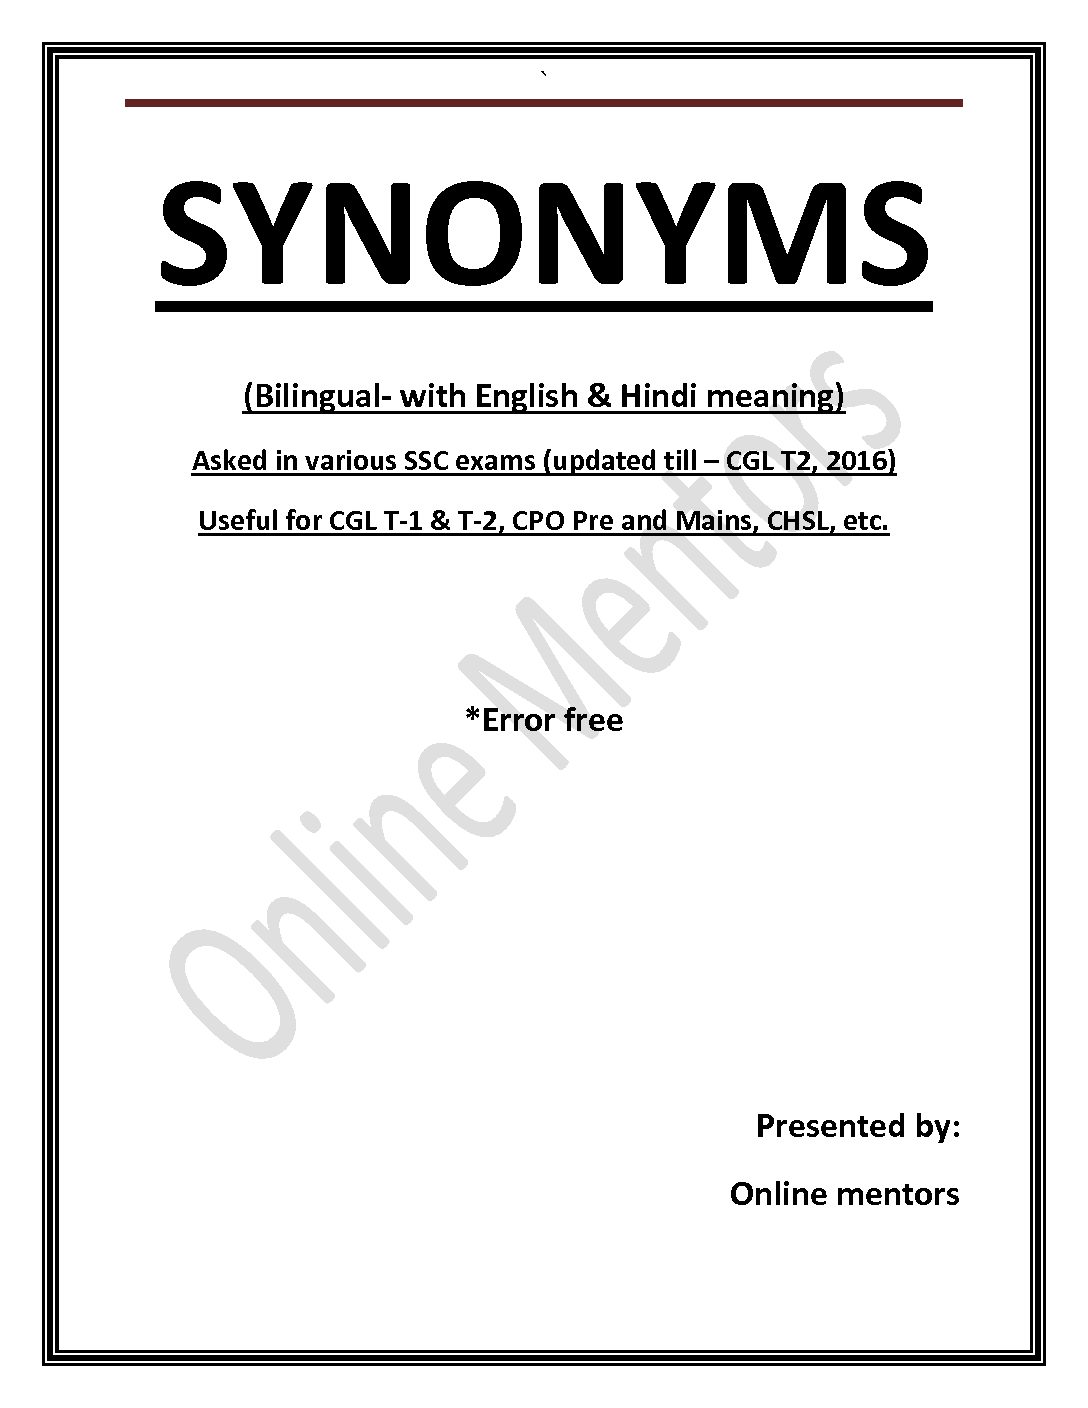 SYNONYMS (Bilingual- with English & Hindi meaning) Asked